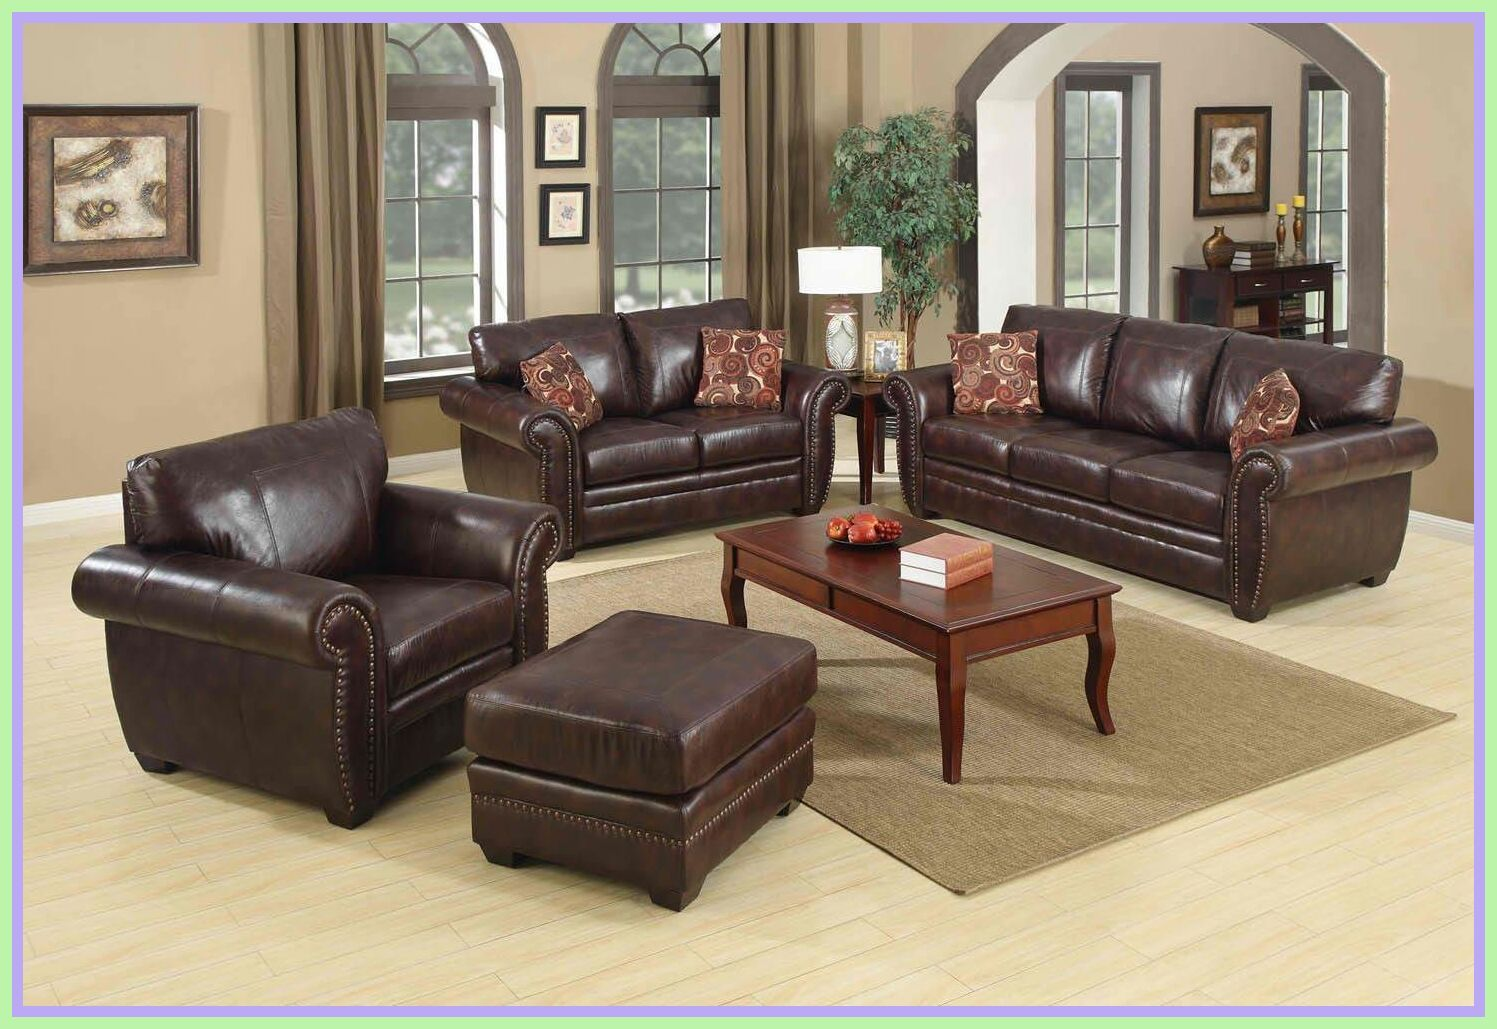 111 Reference Of Living Room Decorating Ideas Dark Brown Lea